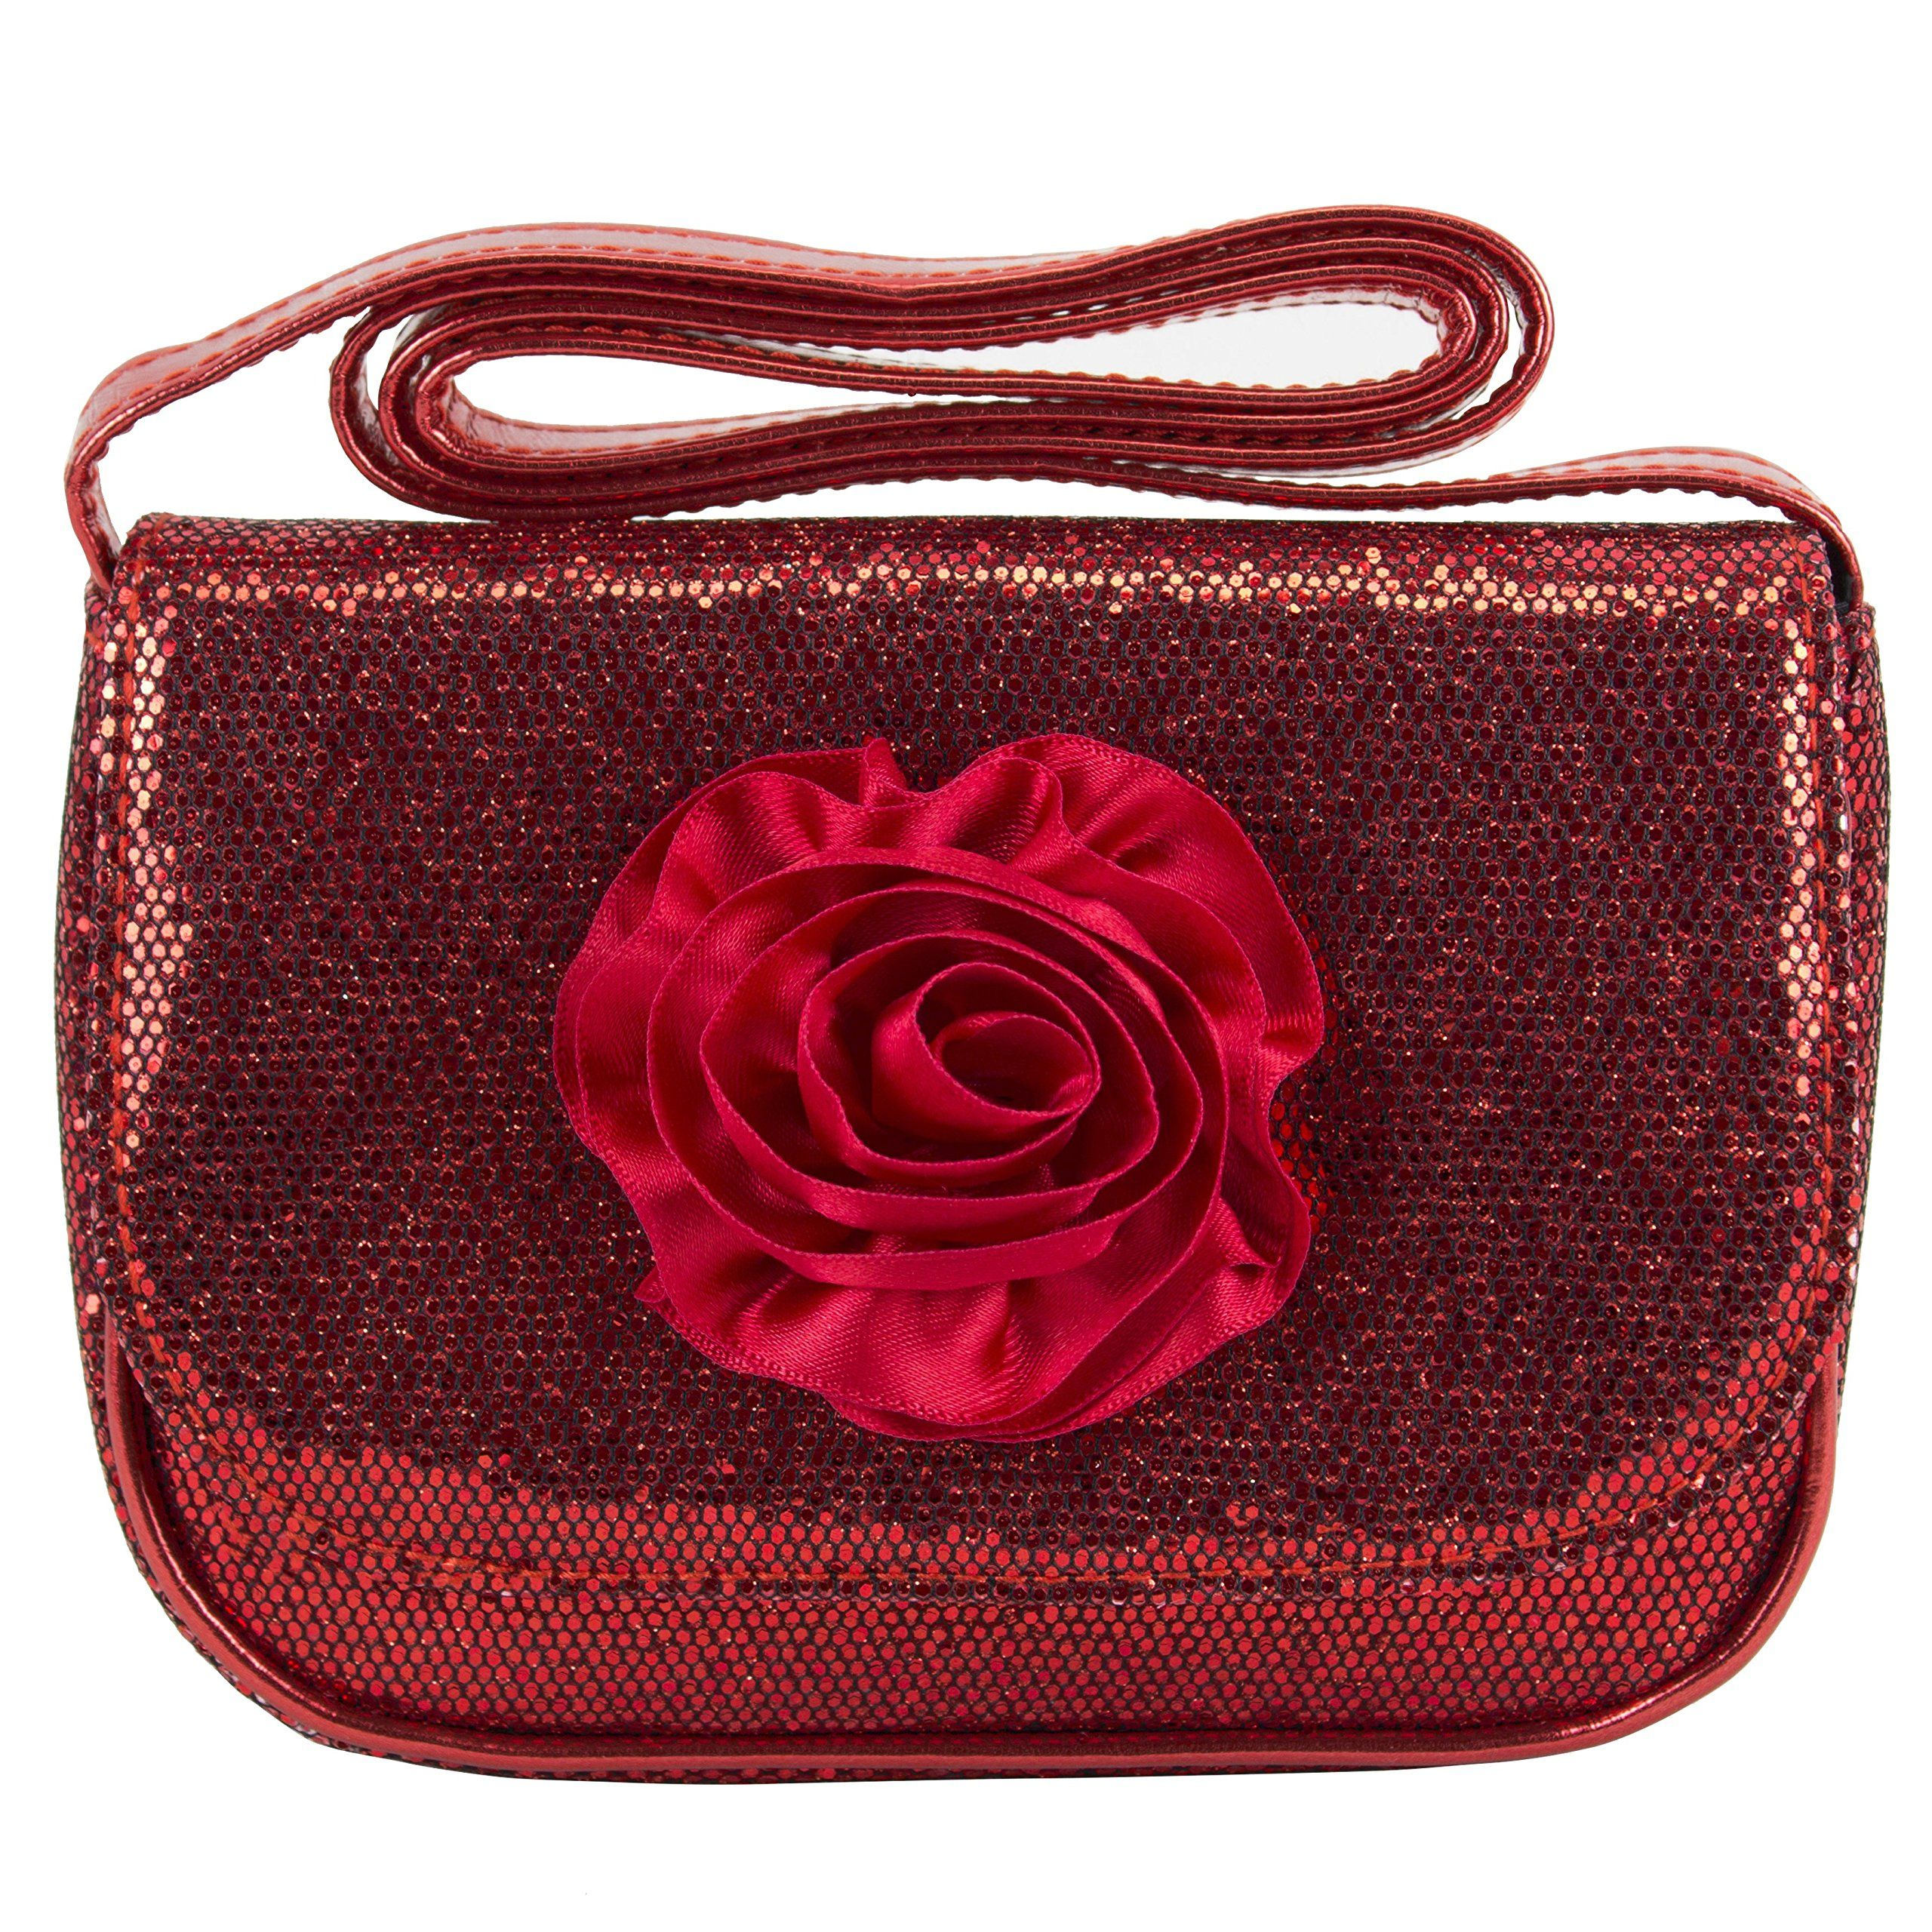 "Mini Sequin Sparkle Girls Red Rose Crossbody Bag Purse. One main compartment. Durable material and construction. Easy to clean and maintain. Easy-close secure snap closure. Strap drop measures 16.5""."